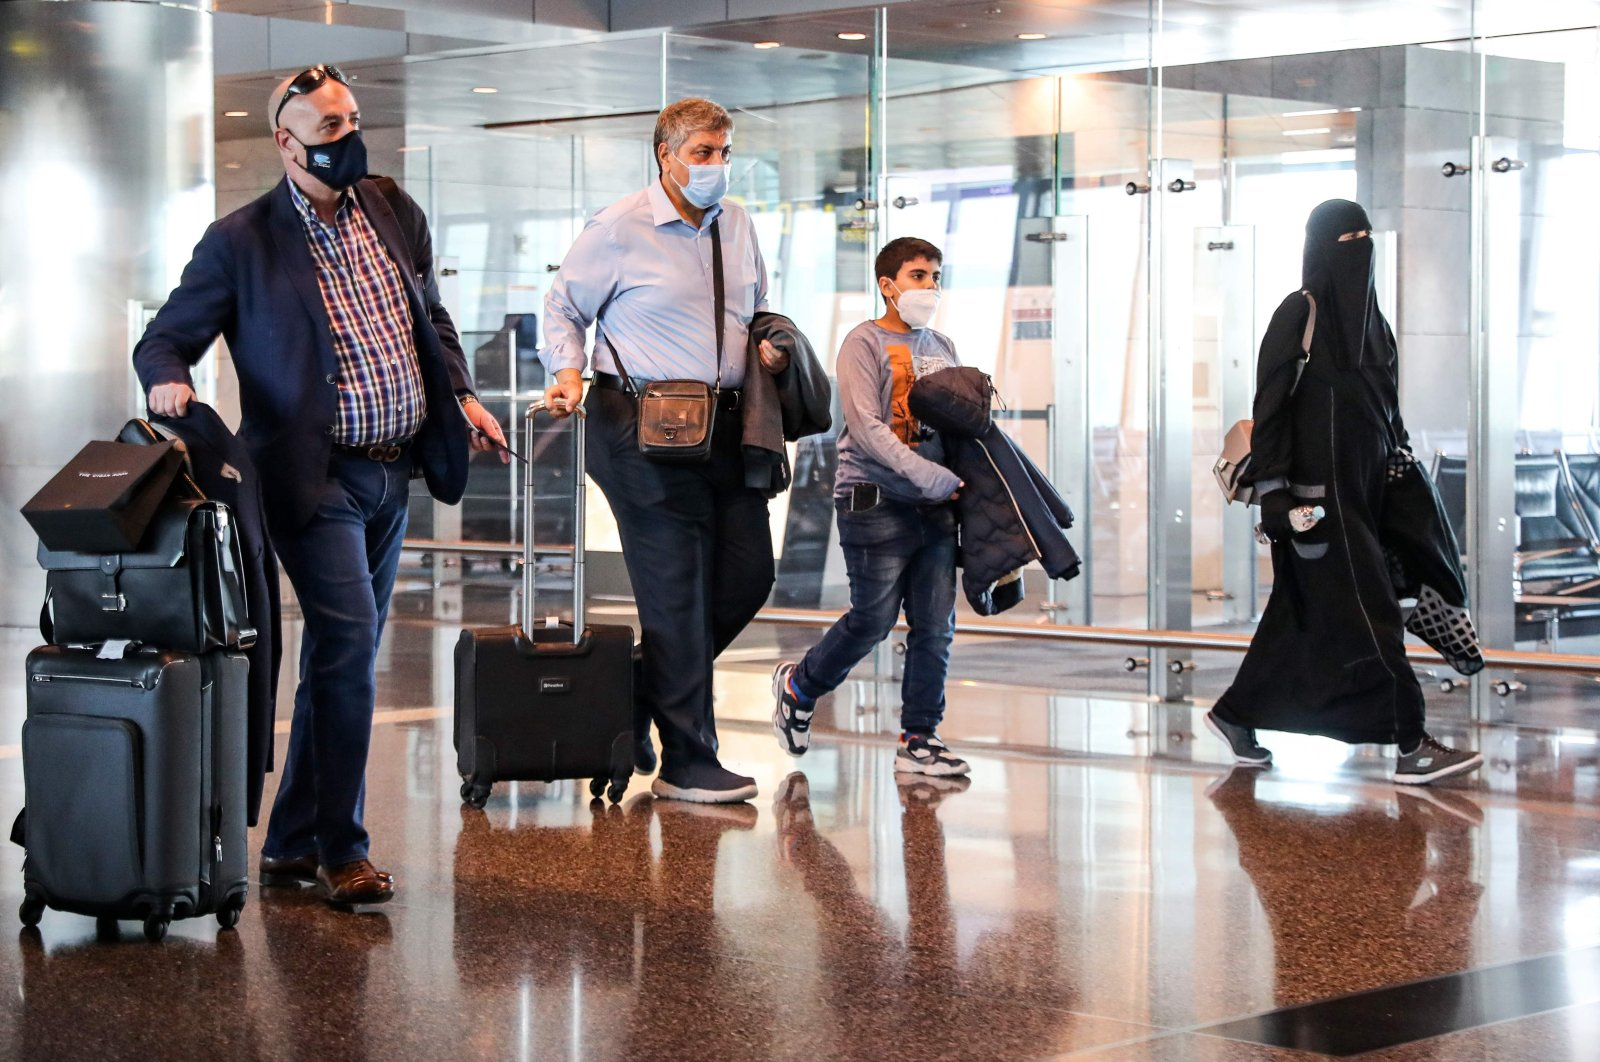 Mask-clad travelers walk with their carry-on luggage to board the first Qatar Airways flight bound for Cairo after the resumption of flights between Qatar and Egypt, at Qatar's Hamad International Airport near the capital Doha on Jan. 18, 2021. (AFP Photo)